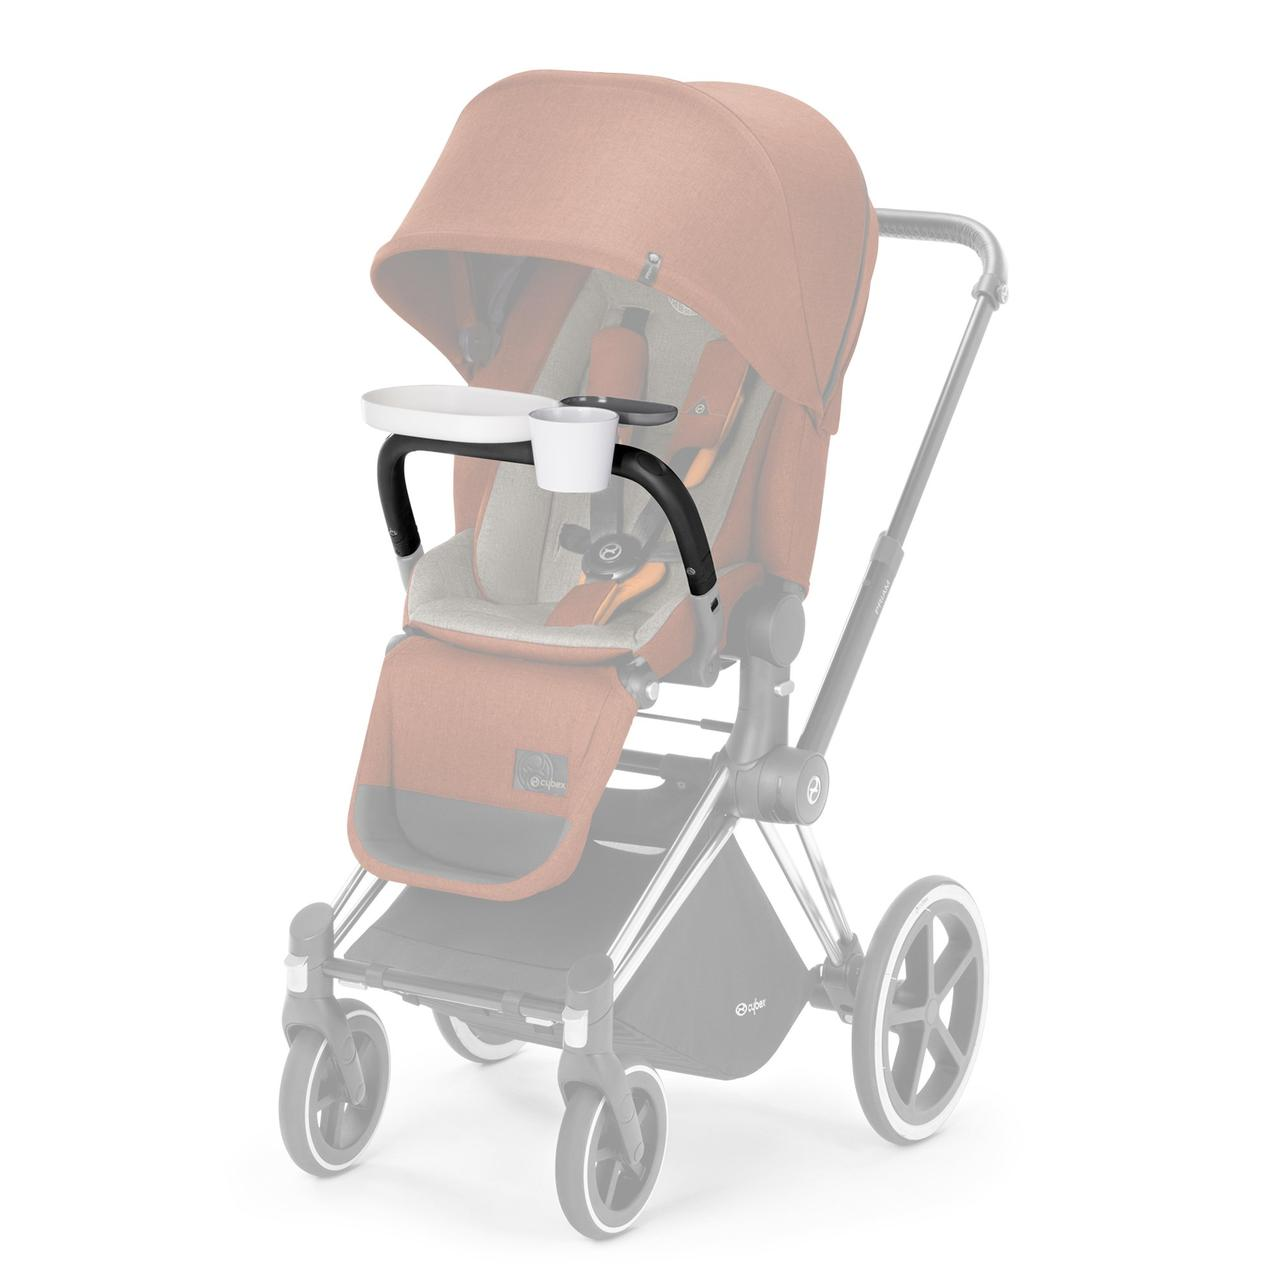 Бампер со столиком Cybex Priam Snack Tray PriamLS+2-in-1 / Grey-grey PU2